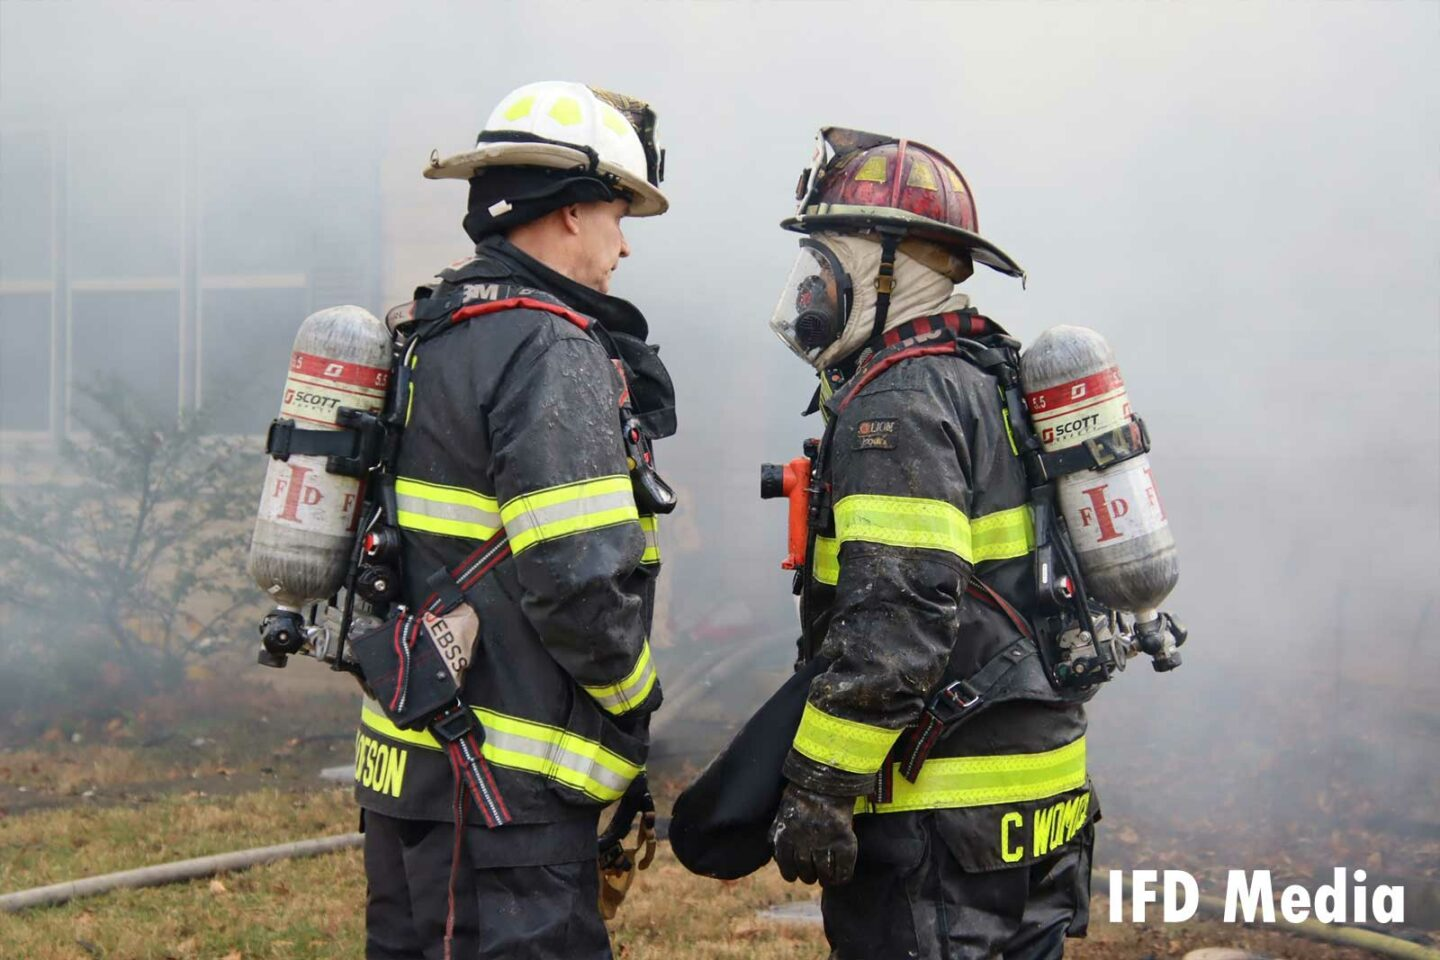 Firefighter and chief speaking at the fire scene